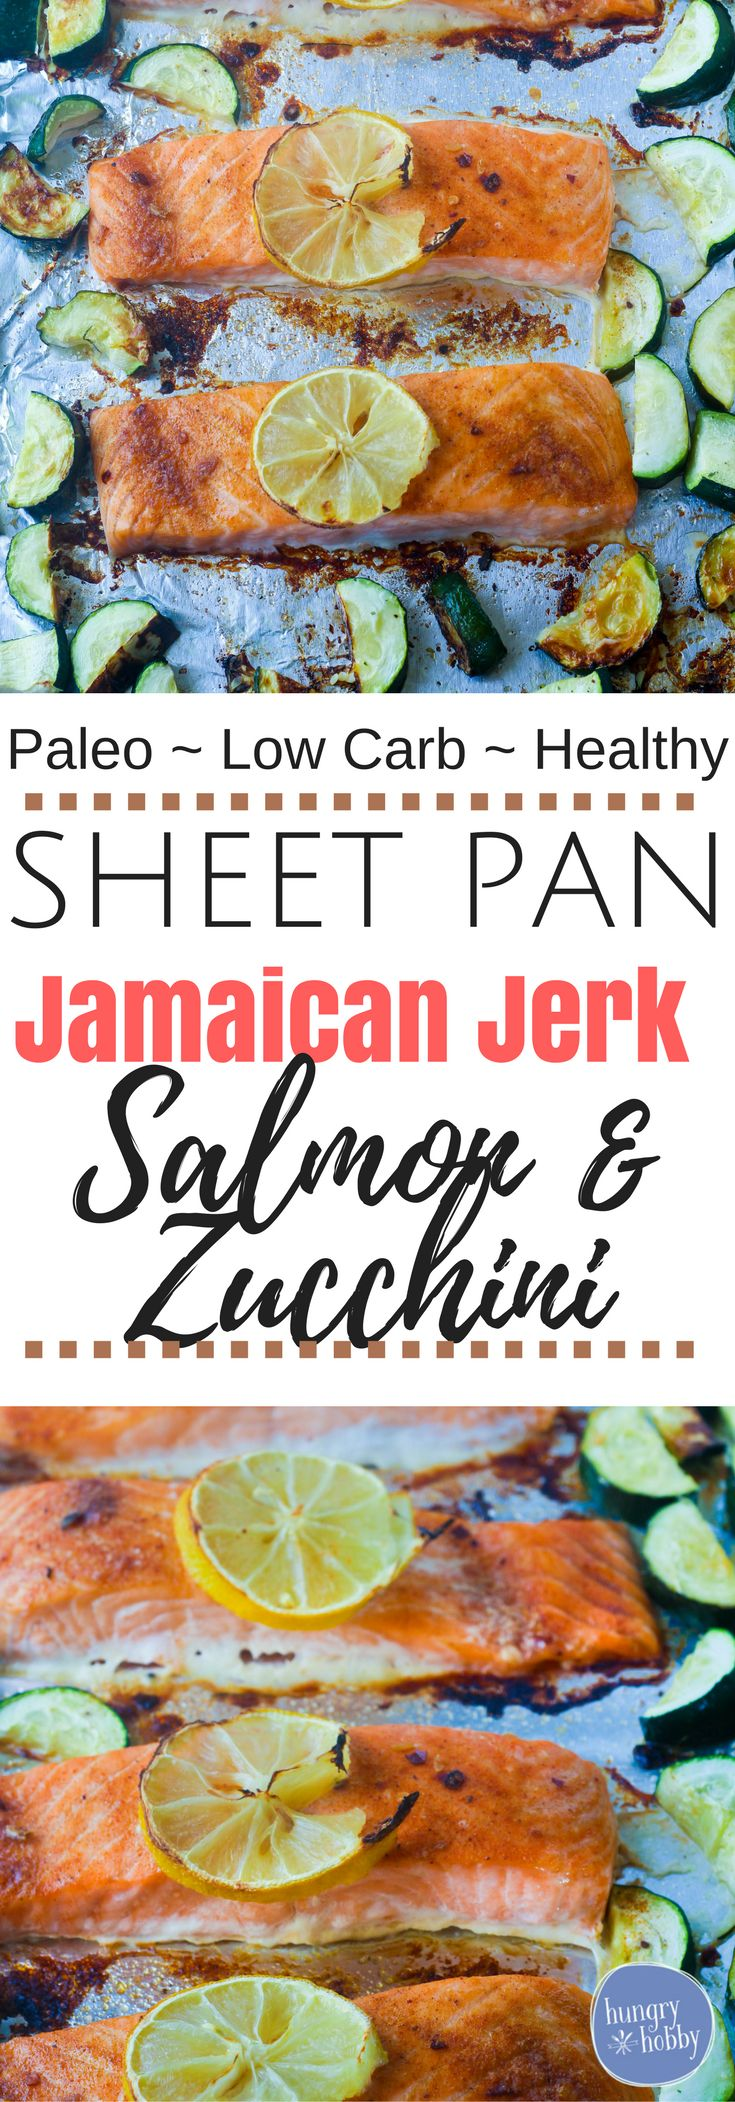 Sheet Pan Baked Jamaican Jerk Salmon & Zucchini is an easy set it & forget it healthy meal ready in less than 30 minutes! Gluten Free, Low Carb via @hungryhobby